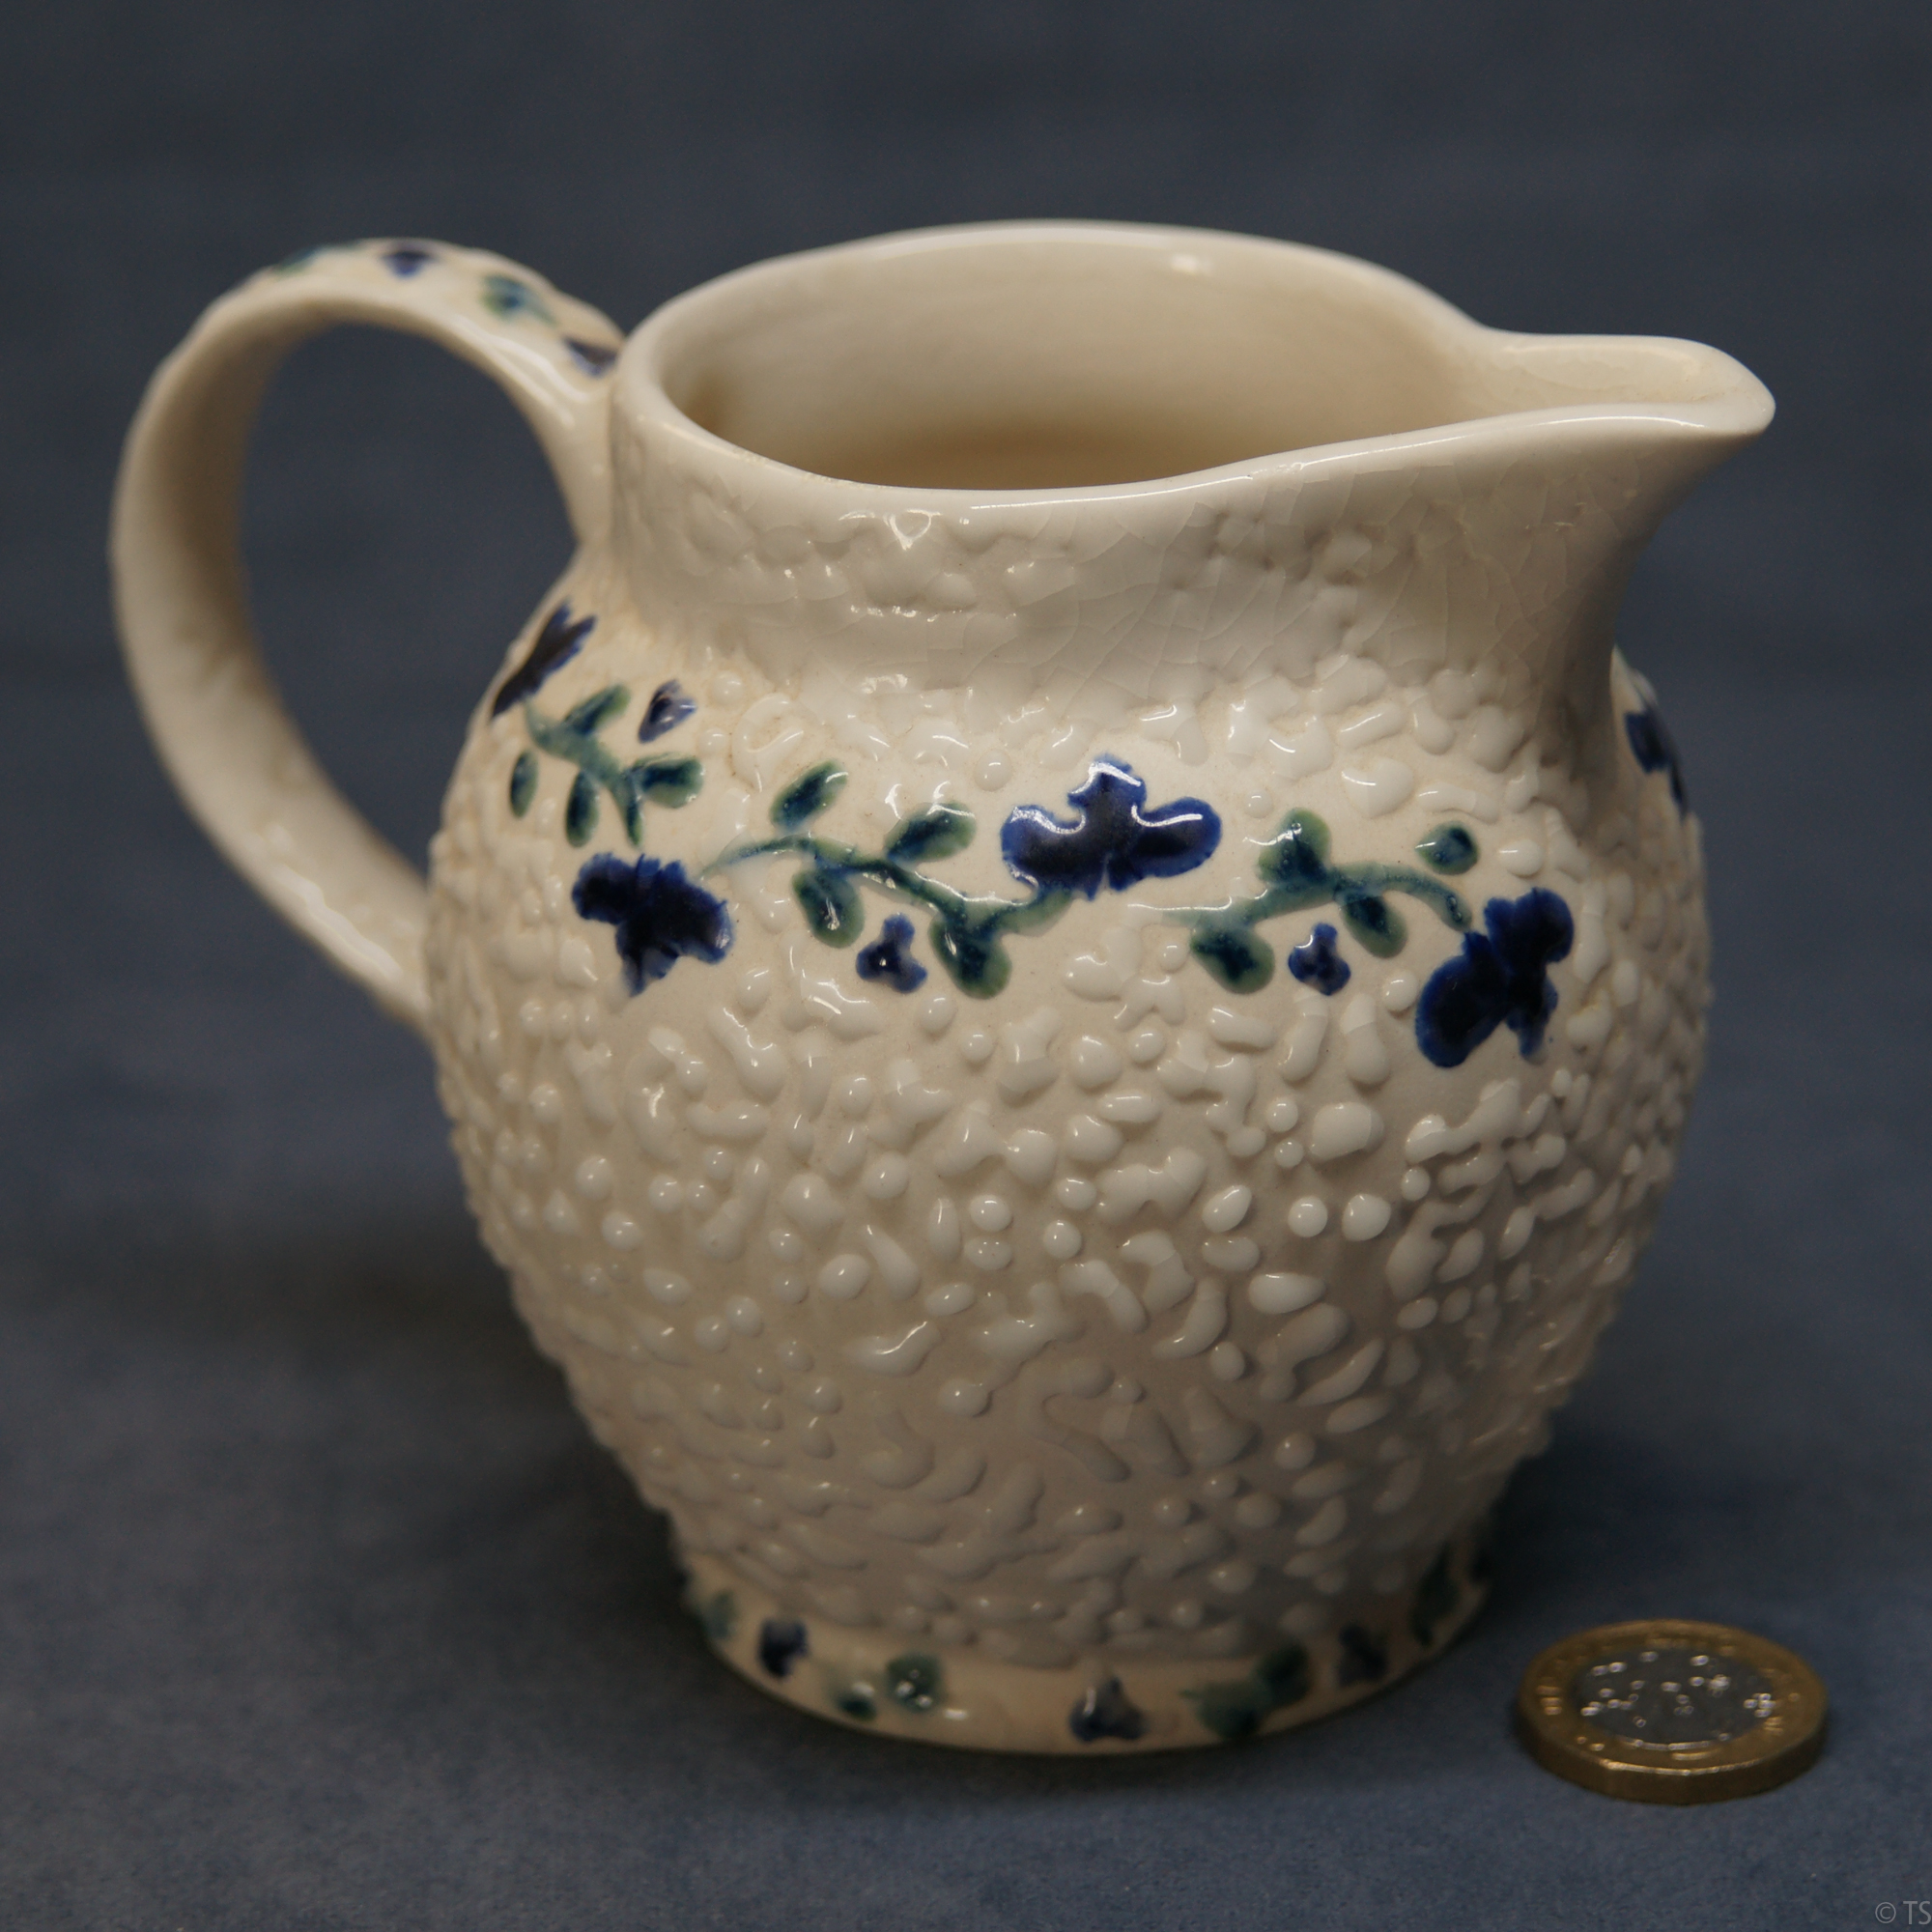 Jug Textured Blue and Green